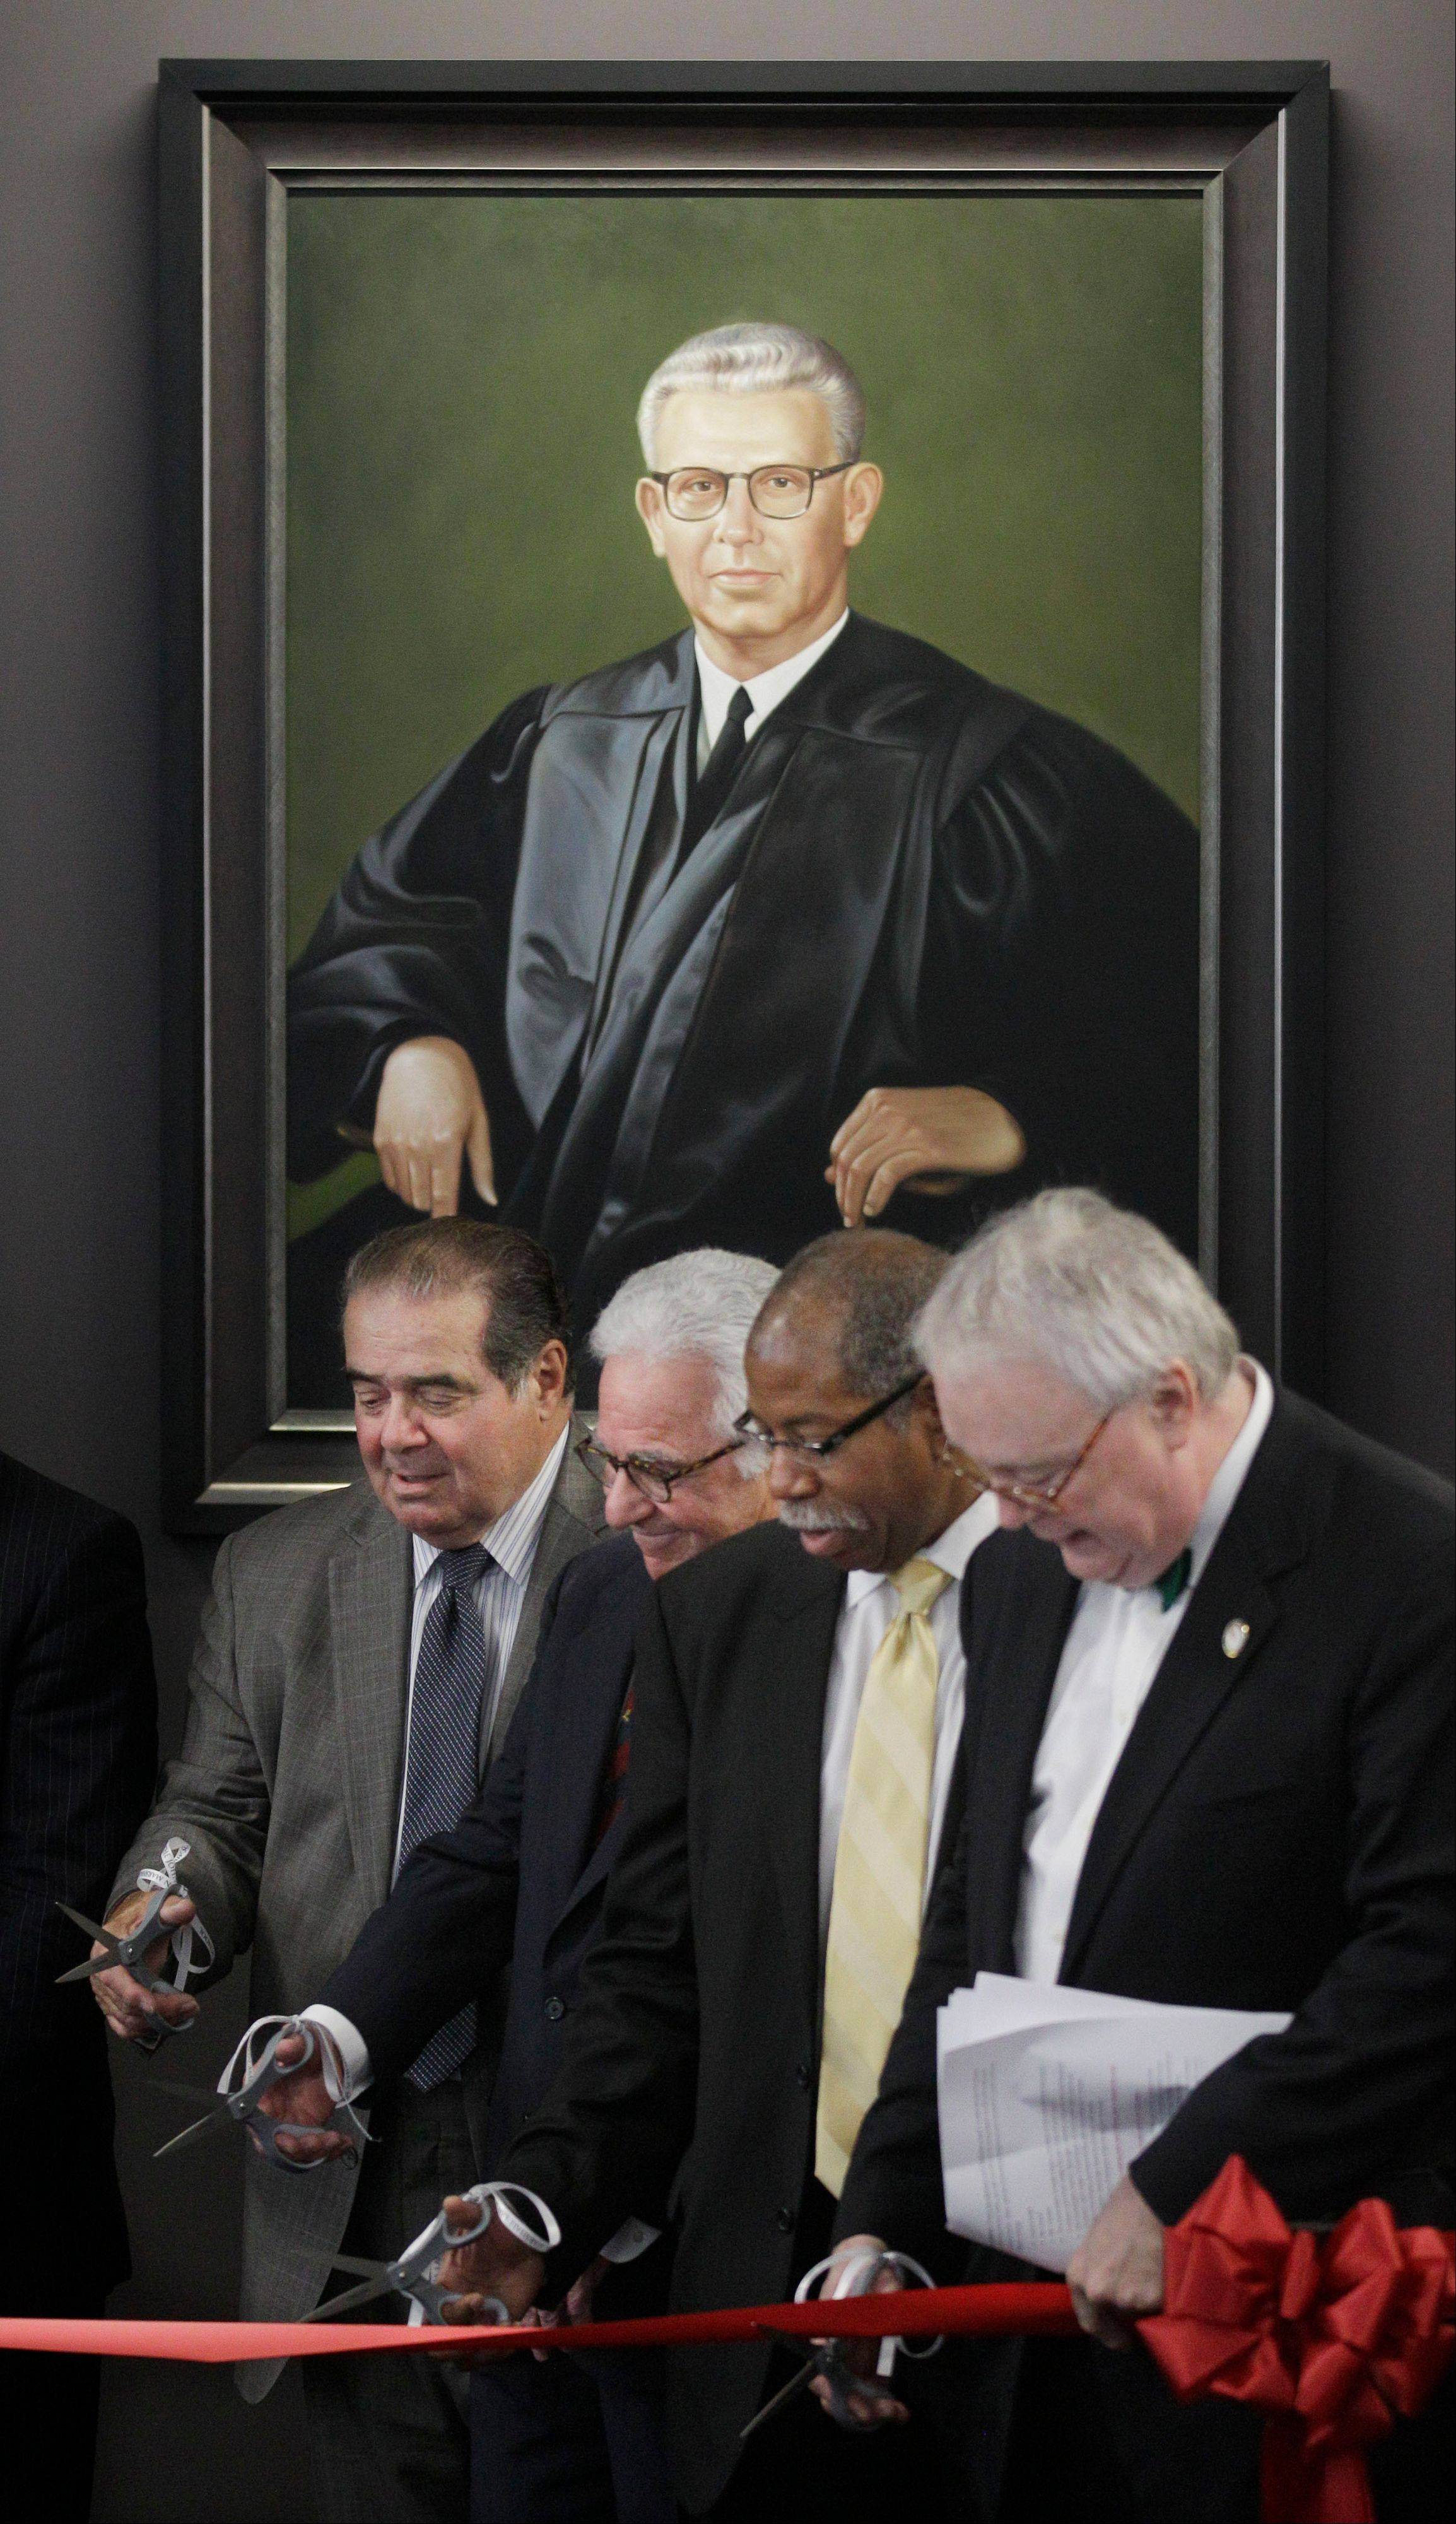 From left, Supreme Court Justice Antonin Scalia, board President Leonard F. Amari, Associate Dean Rory D. Smith and Dean John E. Corkery take part in a ribbon cutting Friday during ceremonies naming a courtroom at The John Marshall Law School in Chicago after former Supreme Court Justice Arthur J. Goldberg, who's portrait hangs behind them.